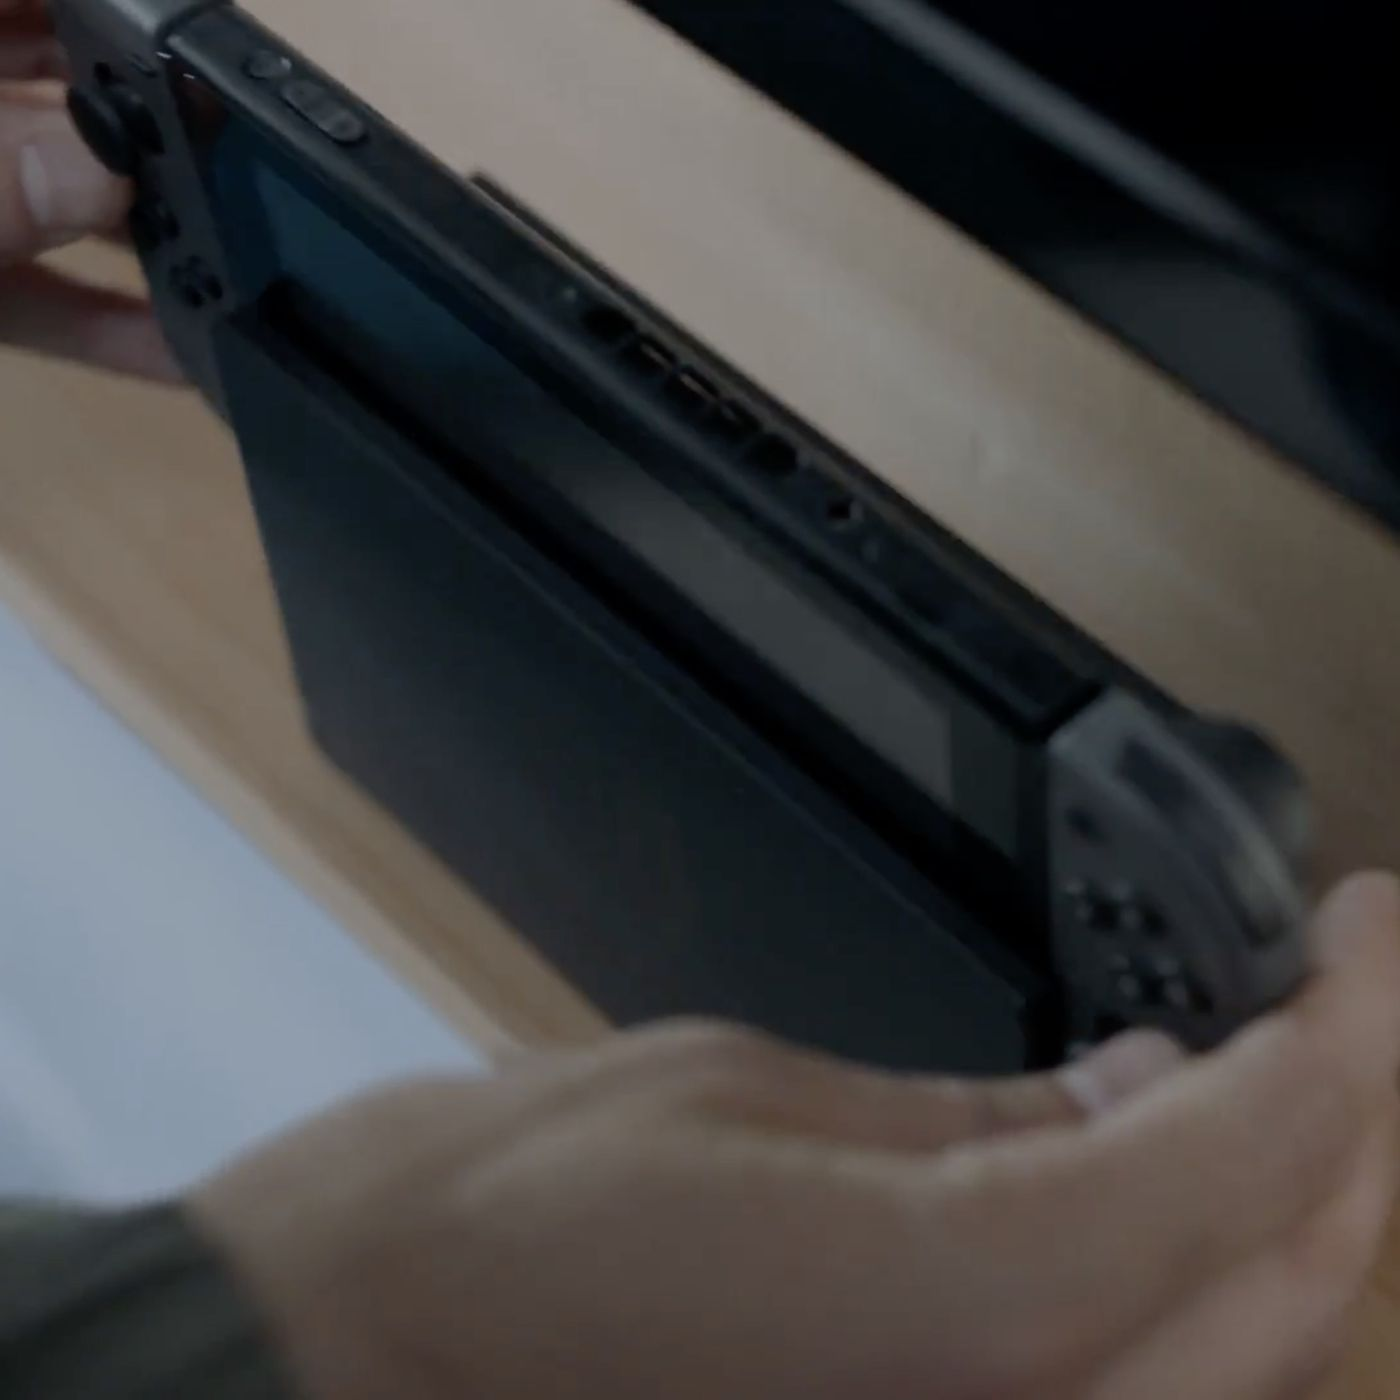 The Nintendo Switch S Dock Doesn T Do Much Of Anything Polygon